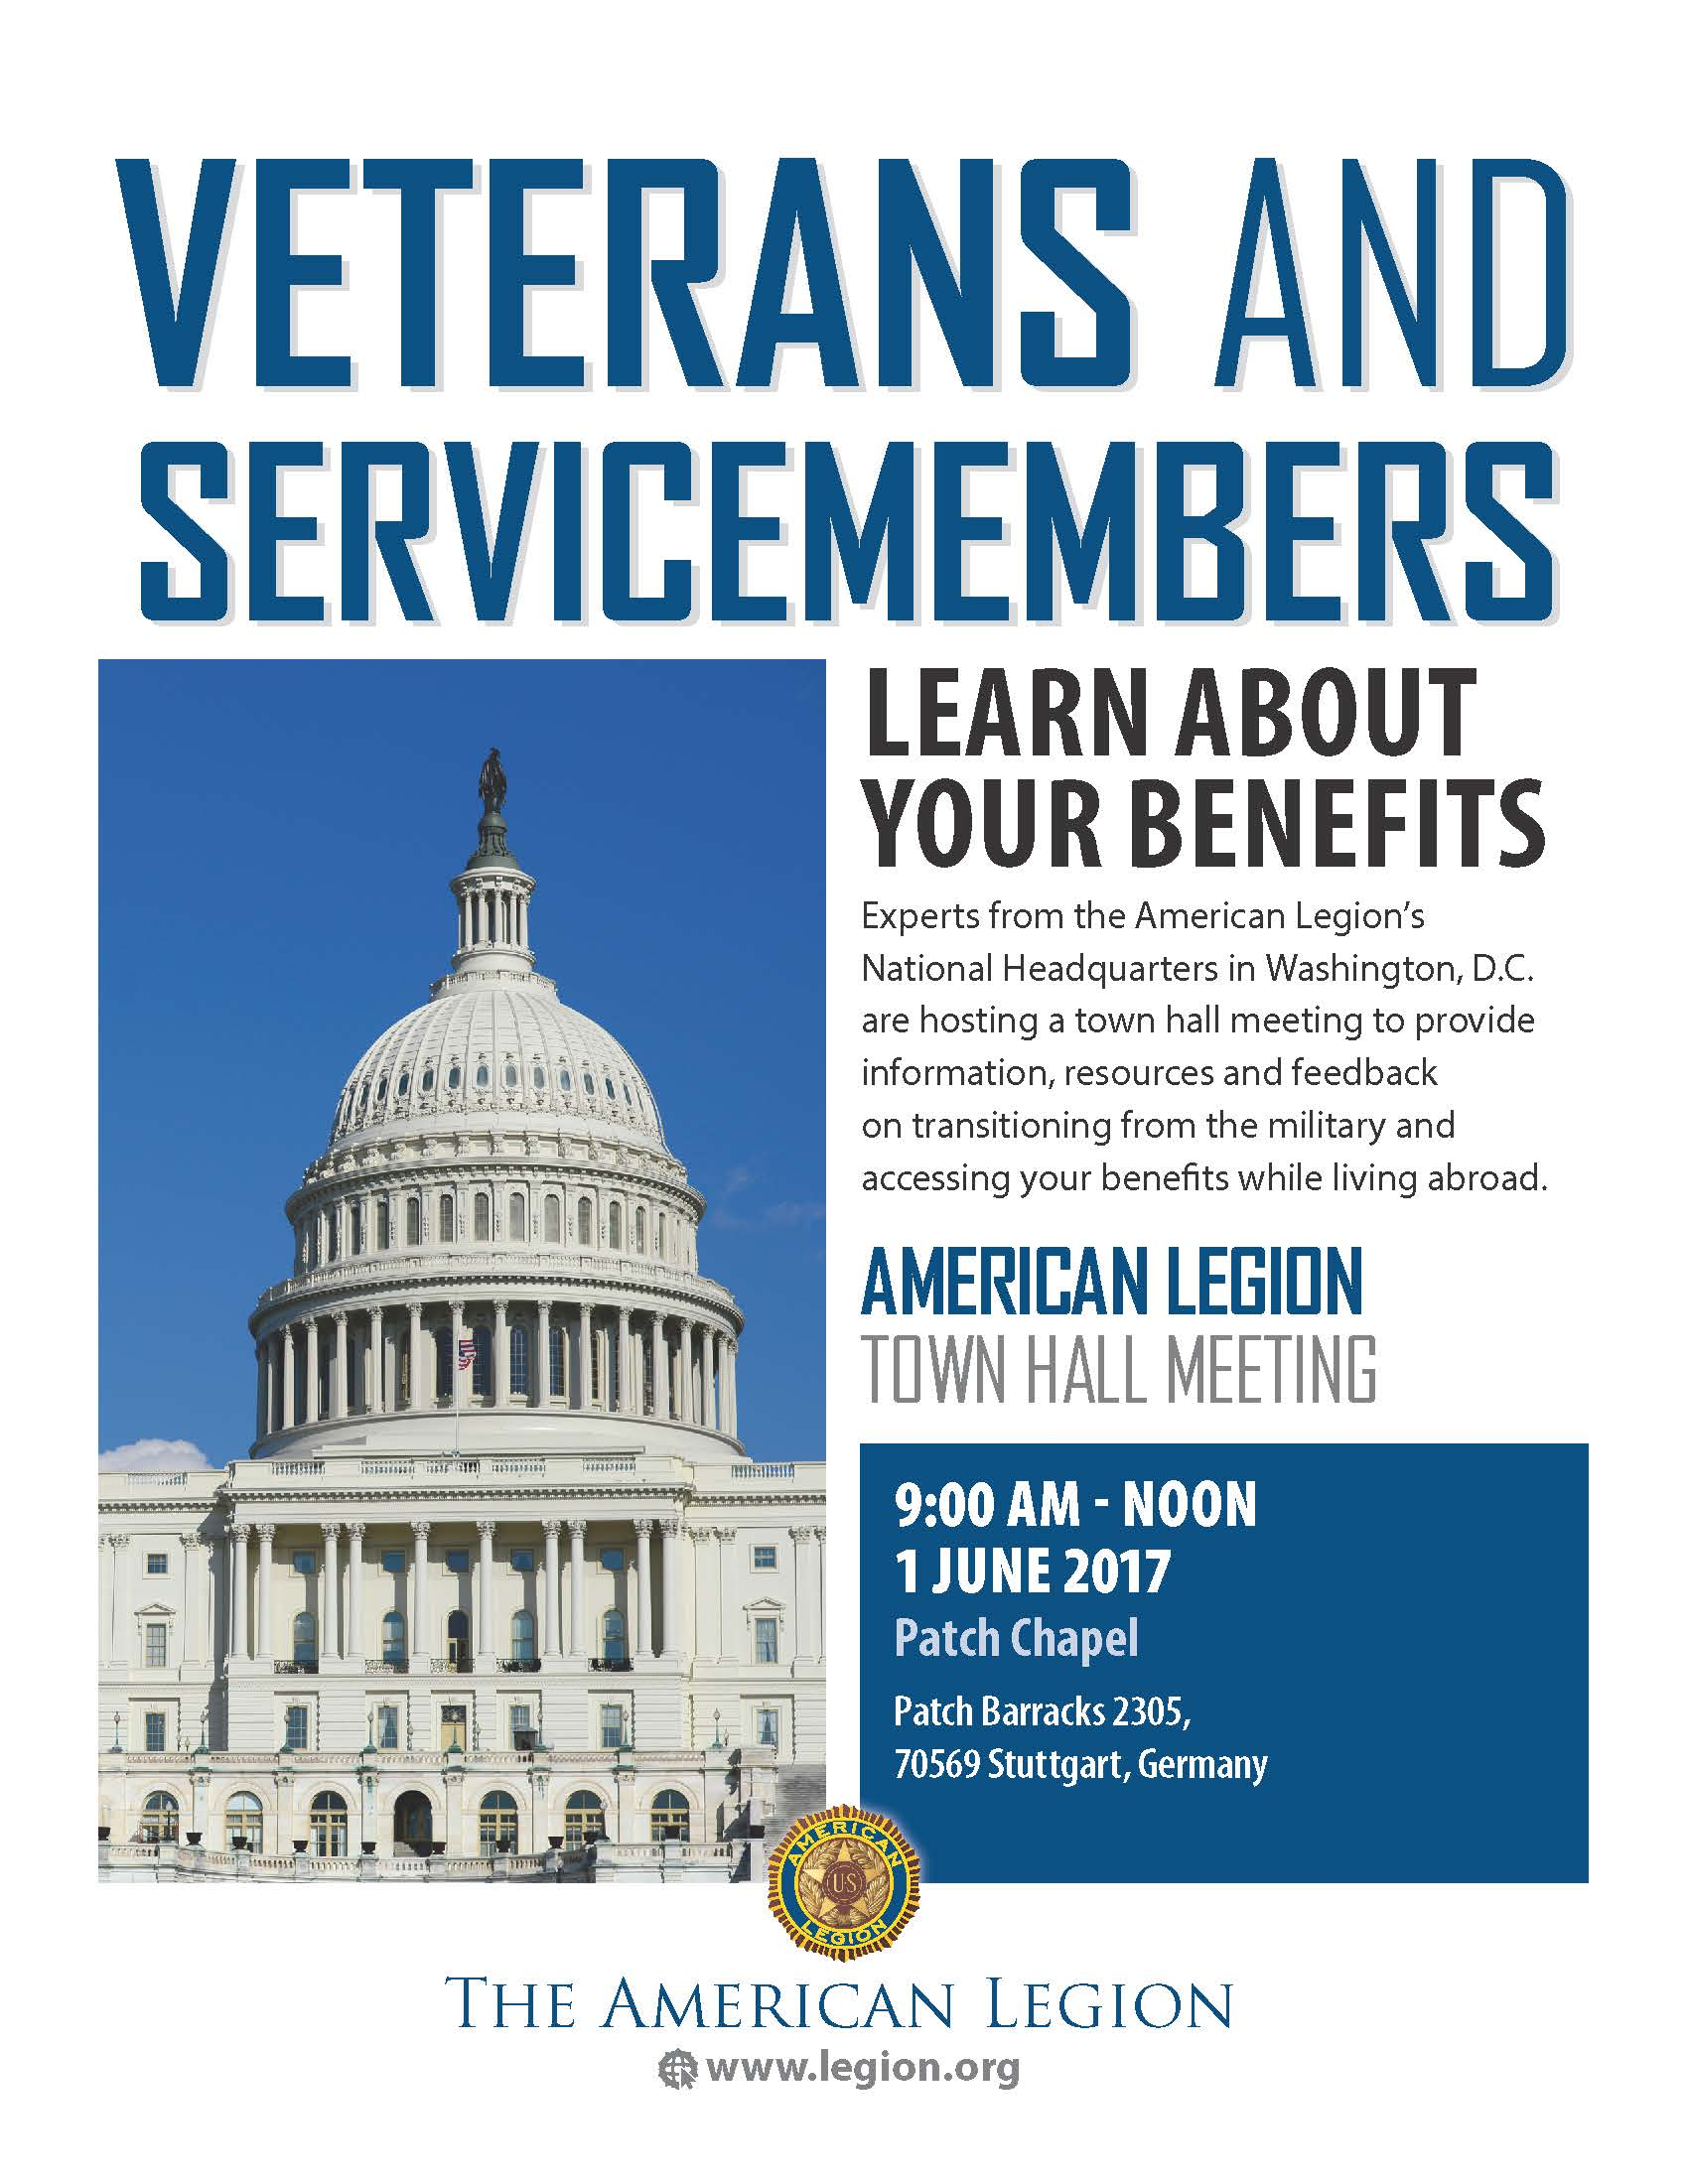 American Legion veterans' benefits awareness Town Hall